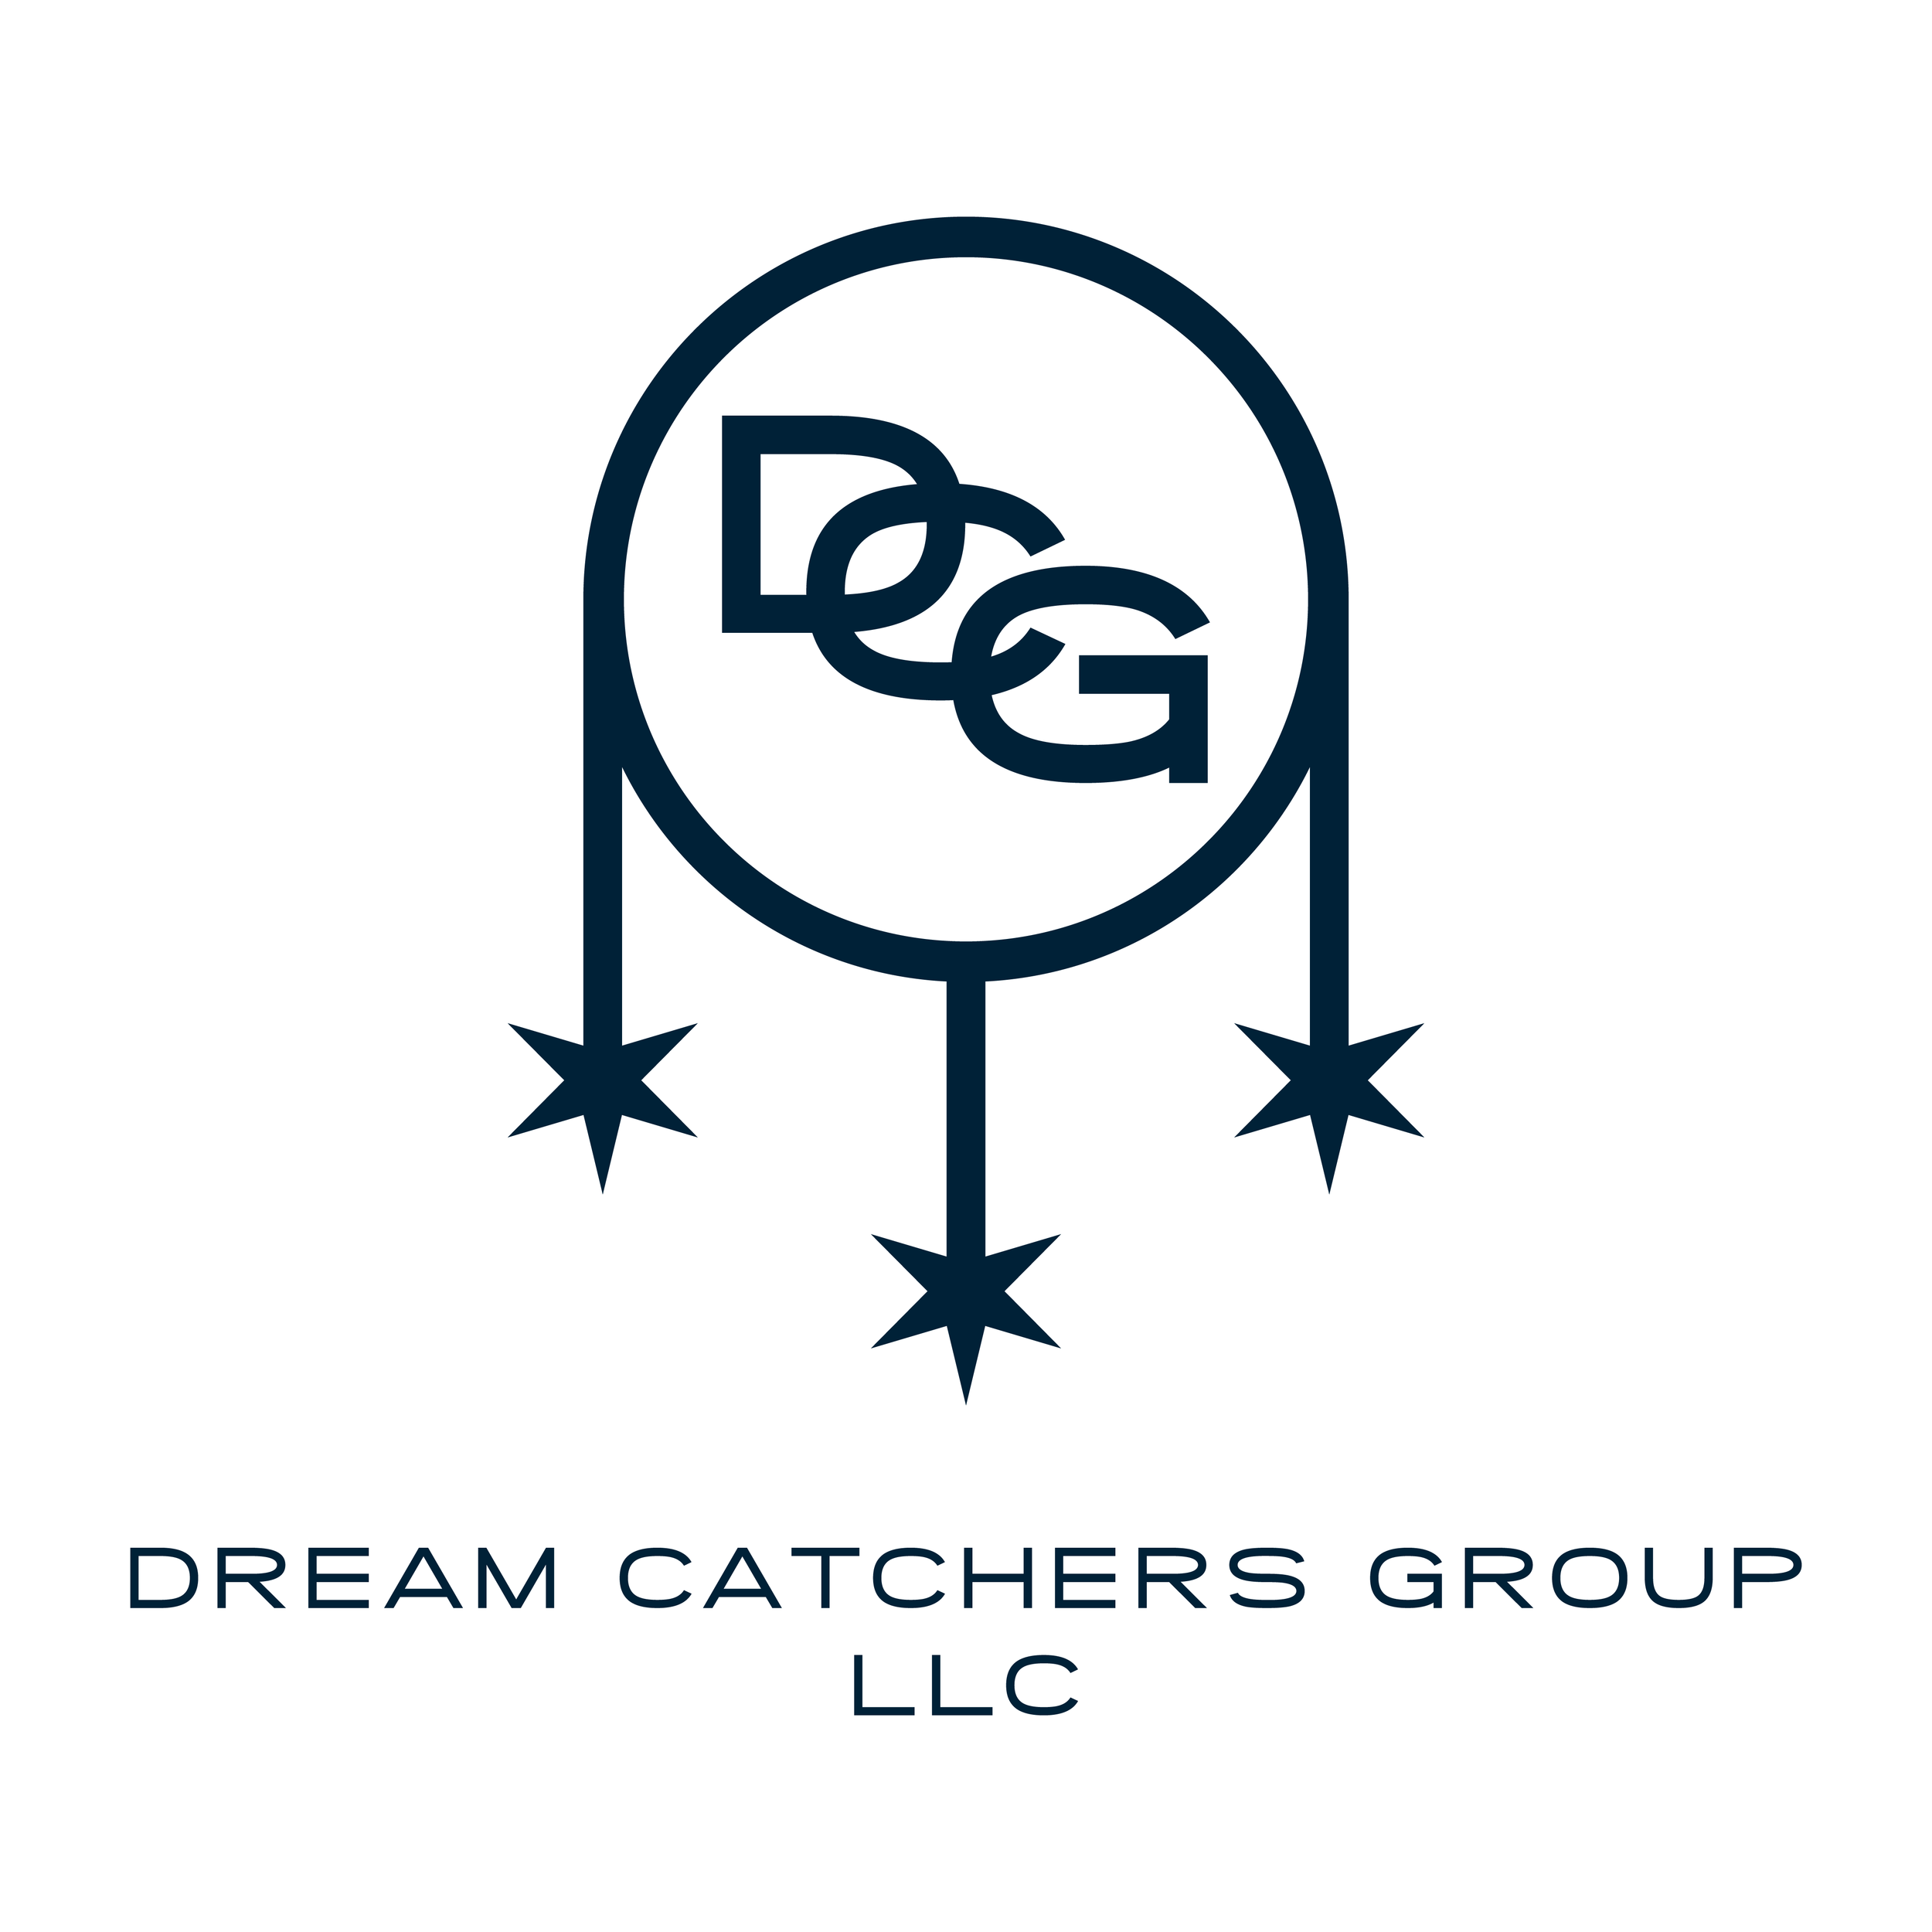 Logo design for Chicago based music consultation LLC Dream Catchers Group. The logo includes 3 Chicago stars, representing the founders, hanging from a dream catcher wrapping around DCG.